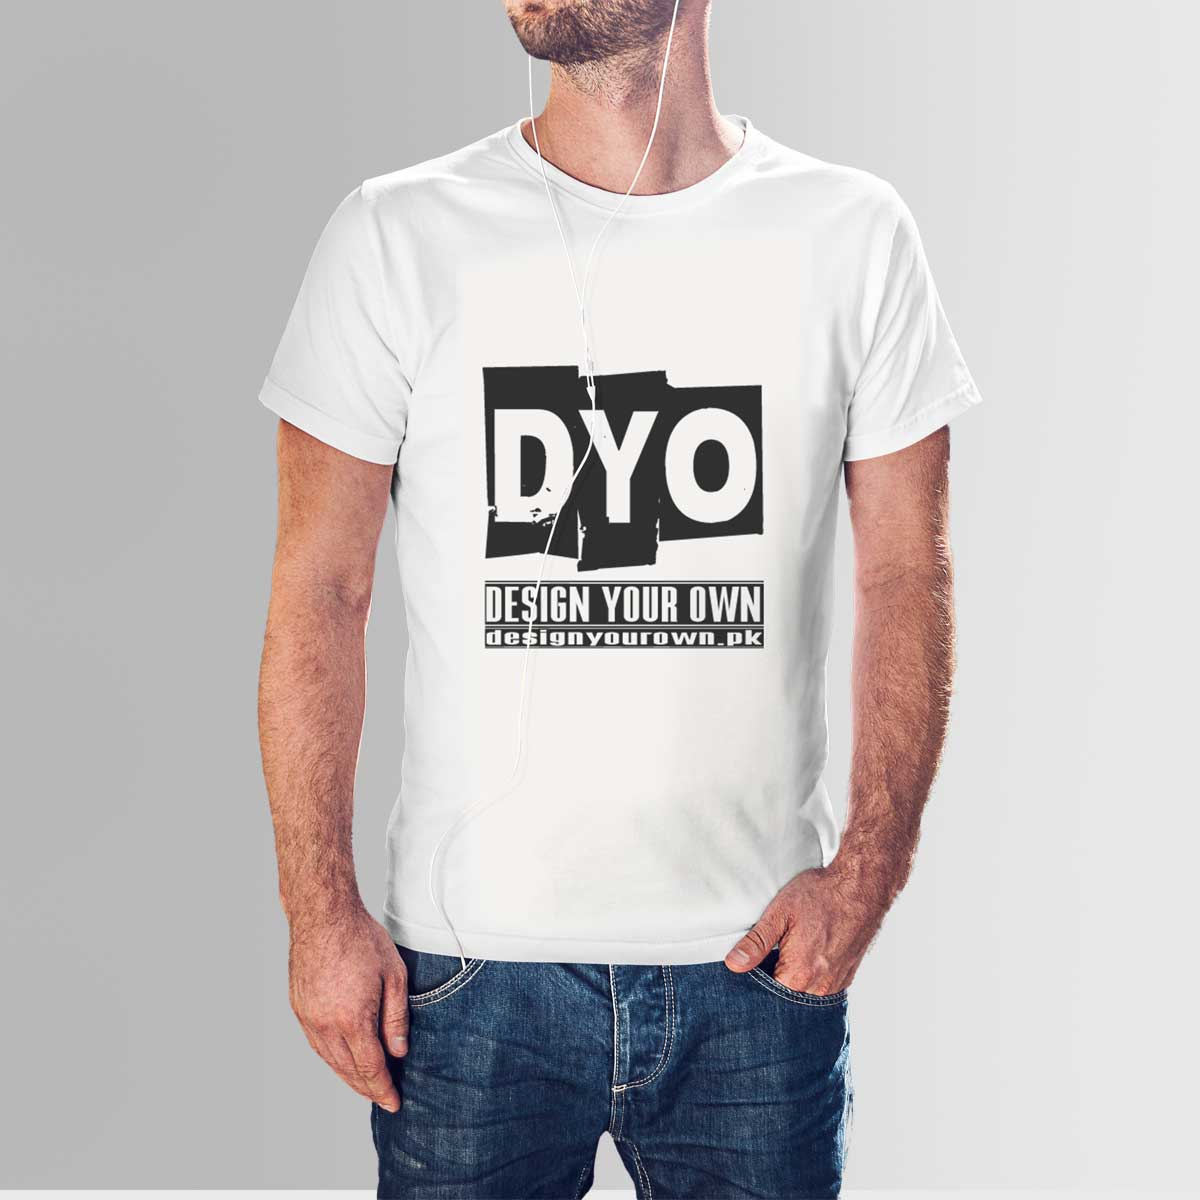 Design Your Own High Quality Cotton T Shirt For Men Crew